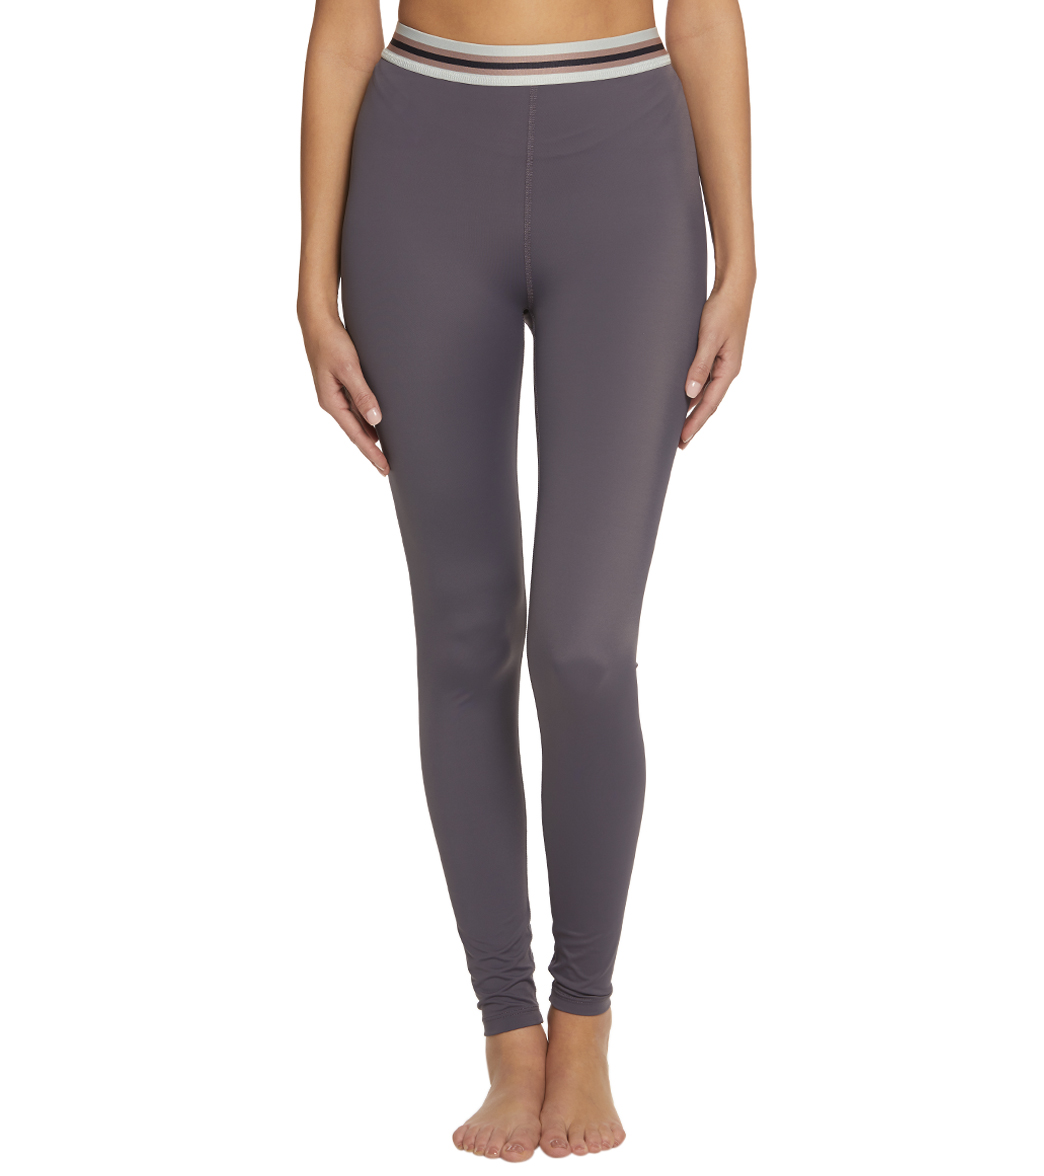 e6c2b13e25 Beyond Yoga Compression One More Stripe High Waisted Yoga Leggings at  YogaOutlet.com - Free Shipping